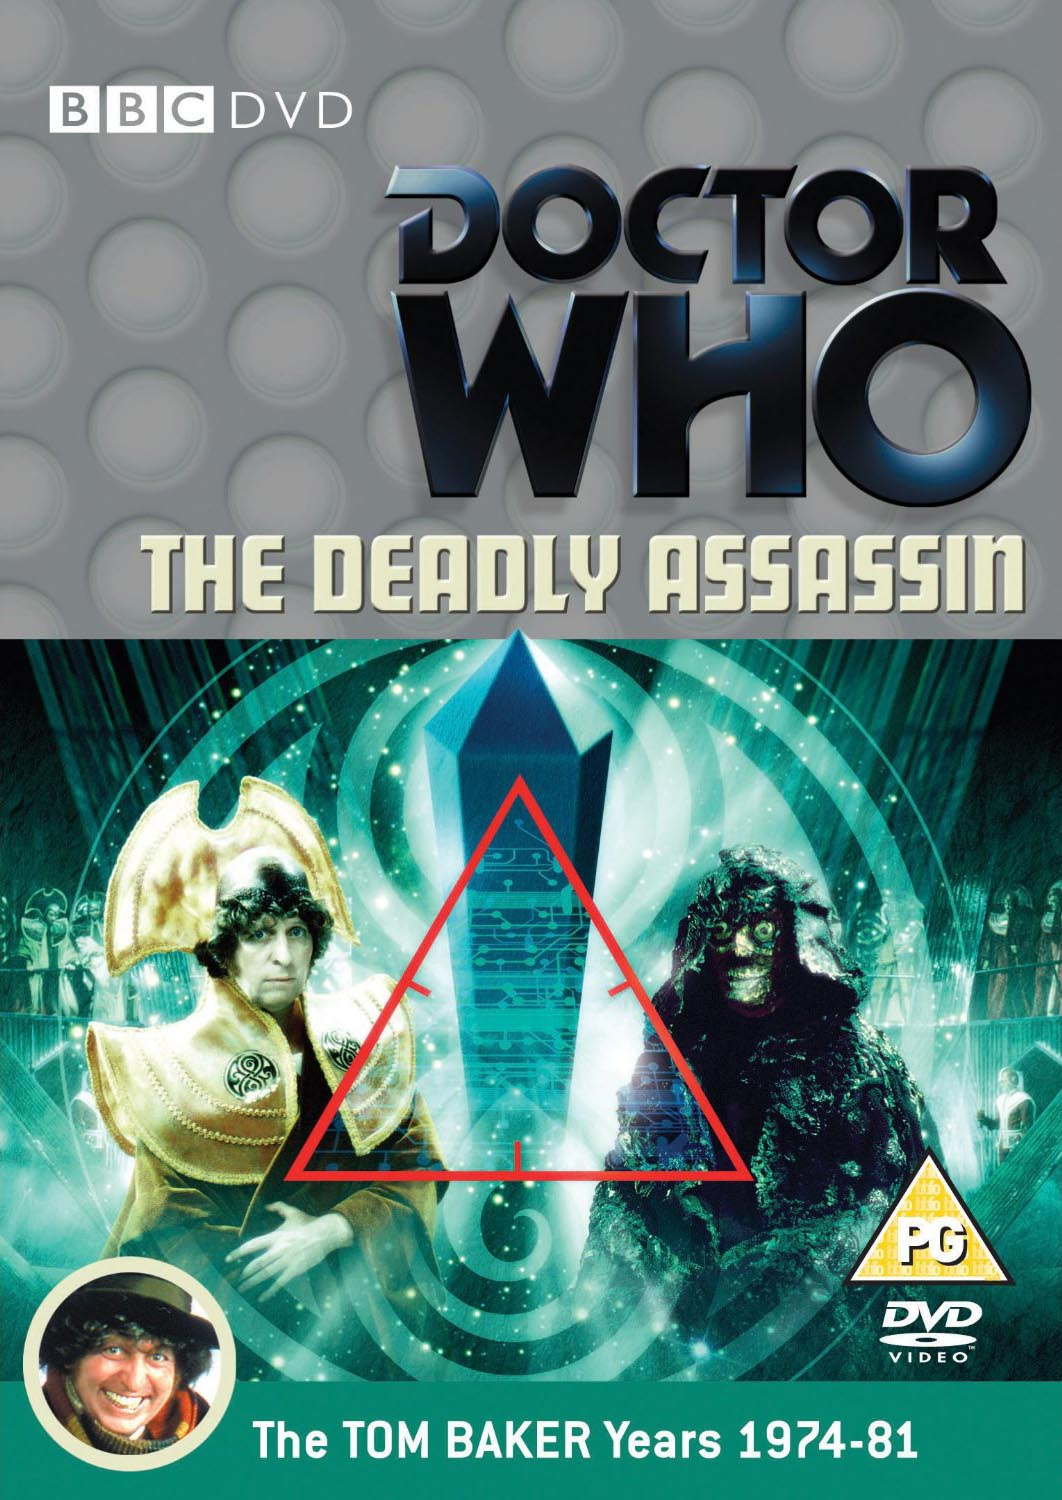 The Deadly Assassin DVD